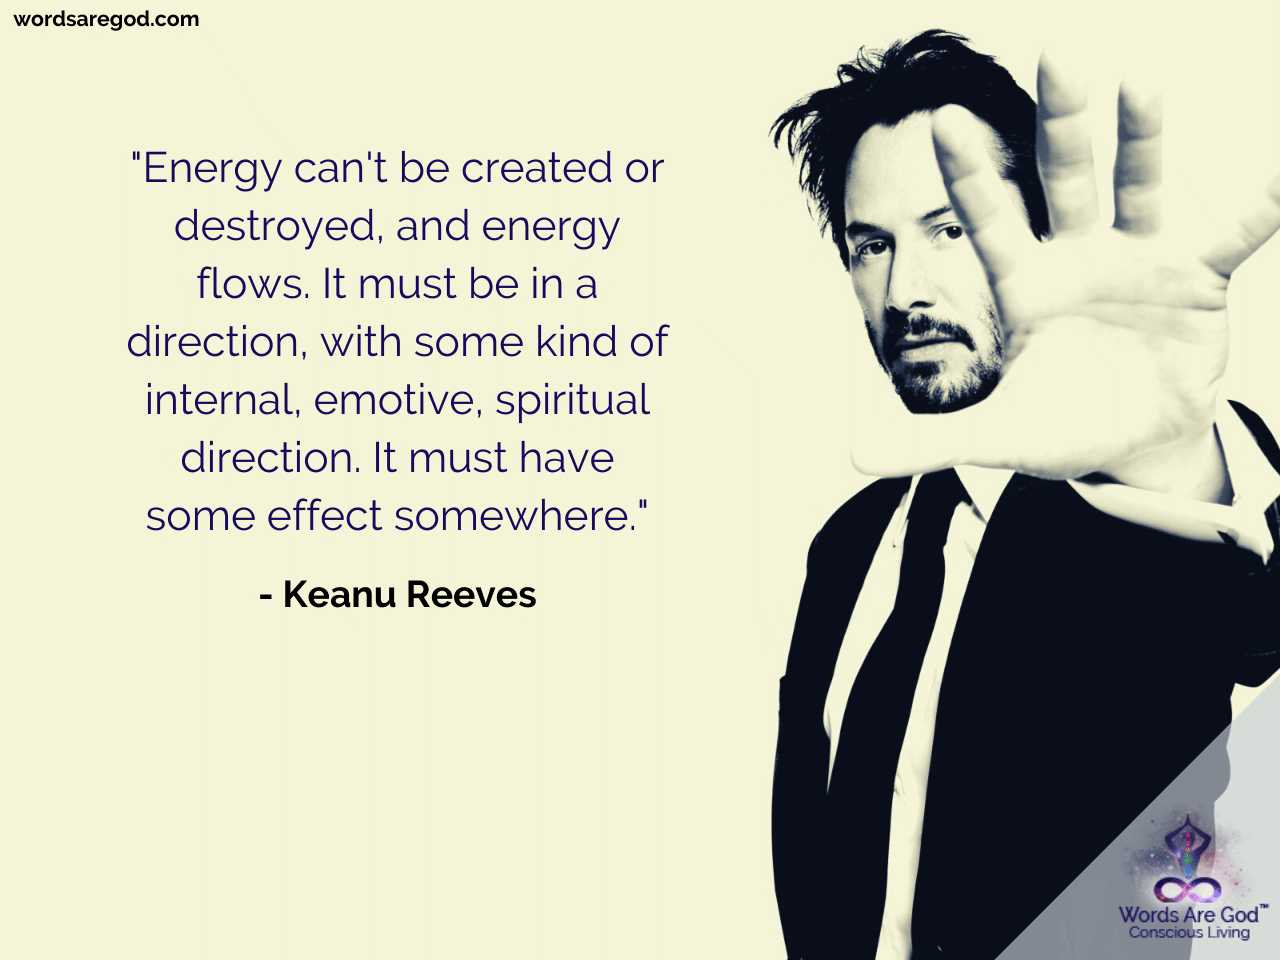 Keanu Reeves Life Quote